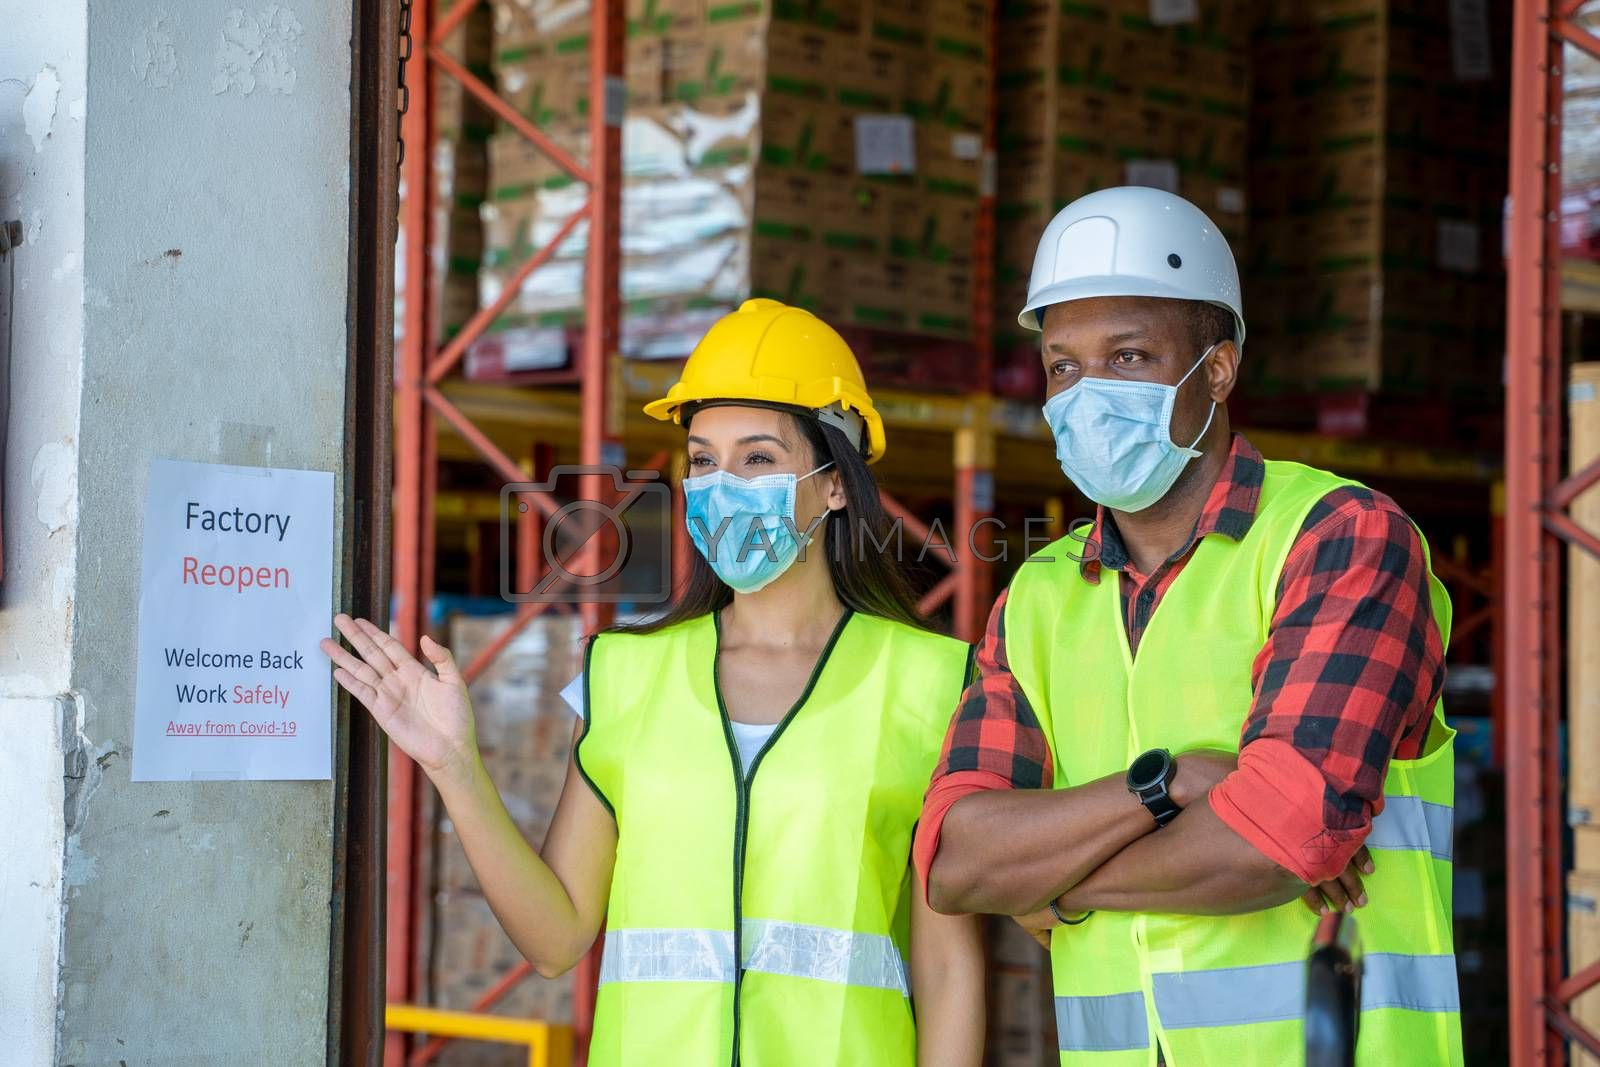 Grup warehouse worker are happy with factory reopen,Welcome back due covid 19 pandemic and current situation is better,Coronavirus has turned into a global emergency.